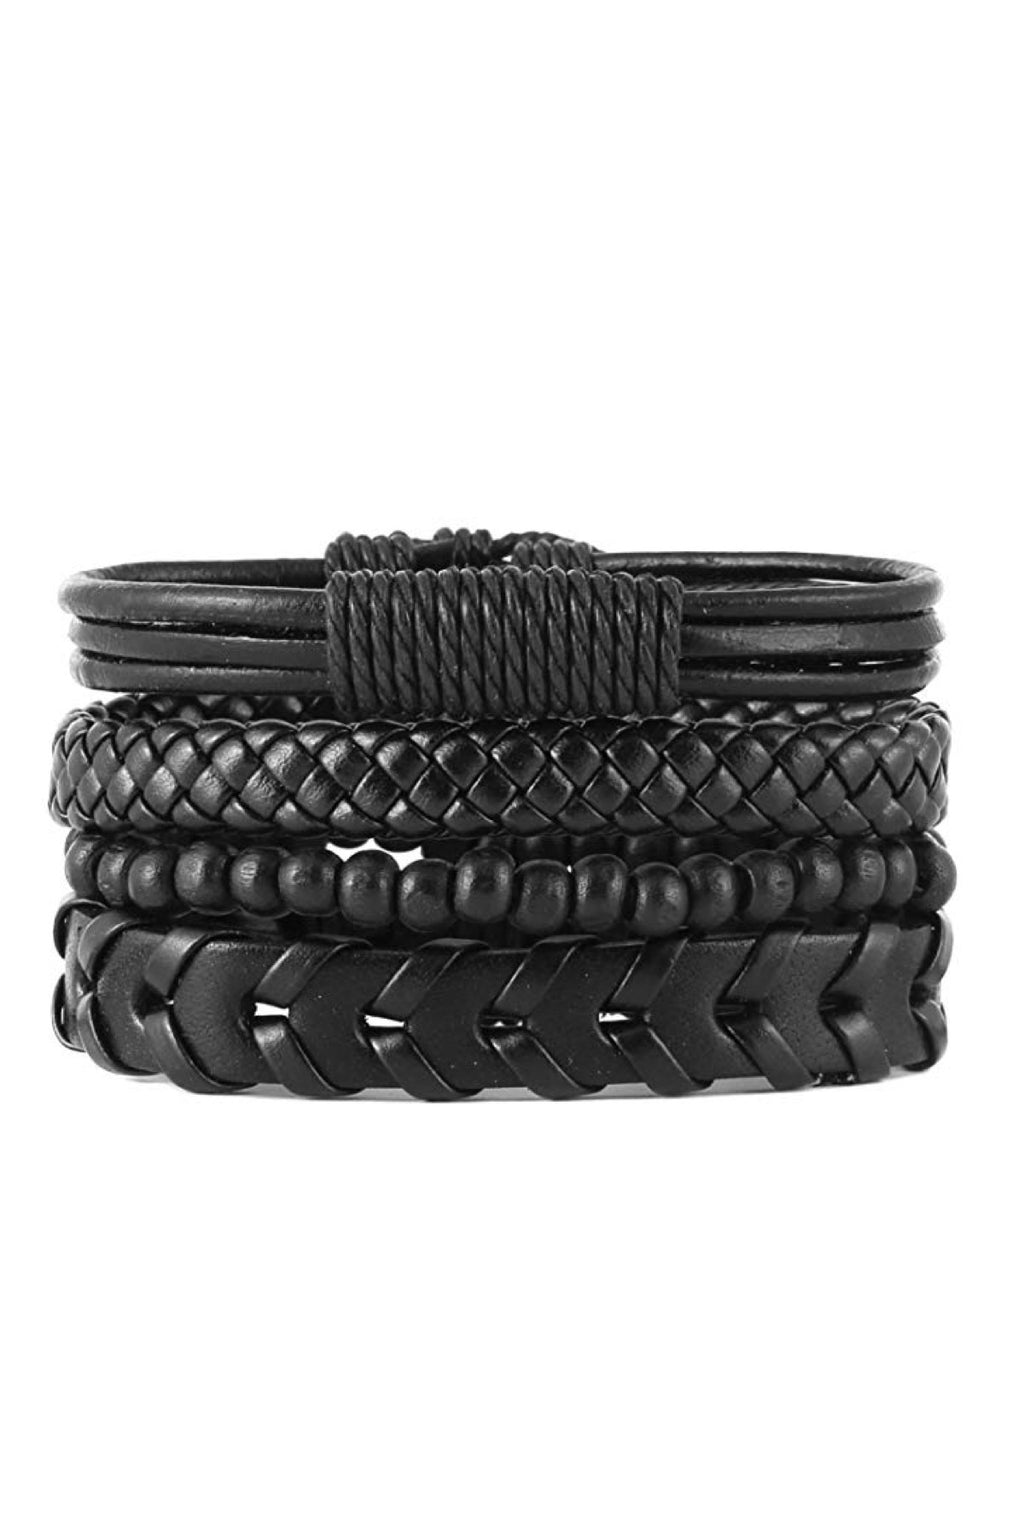 Set of 4 Black Leather Woven Bracelets